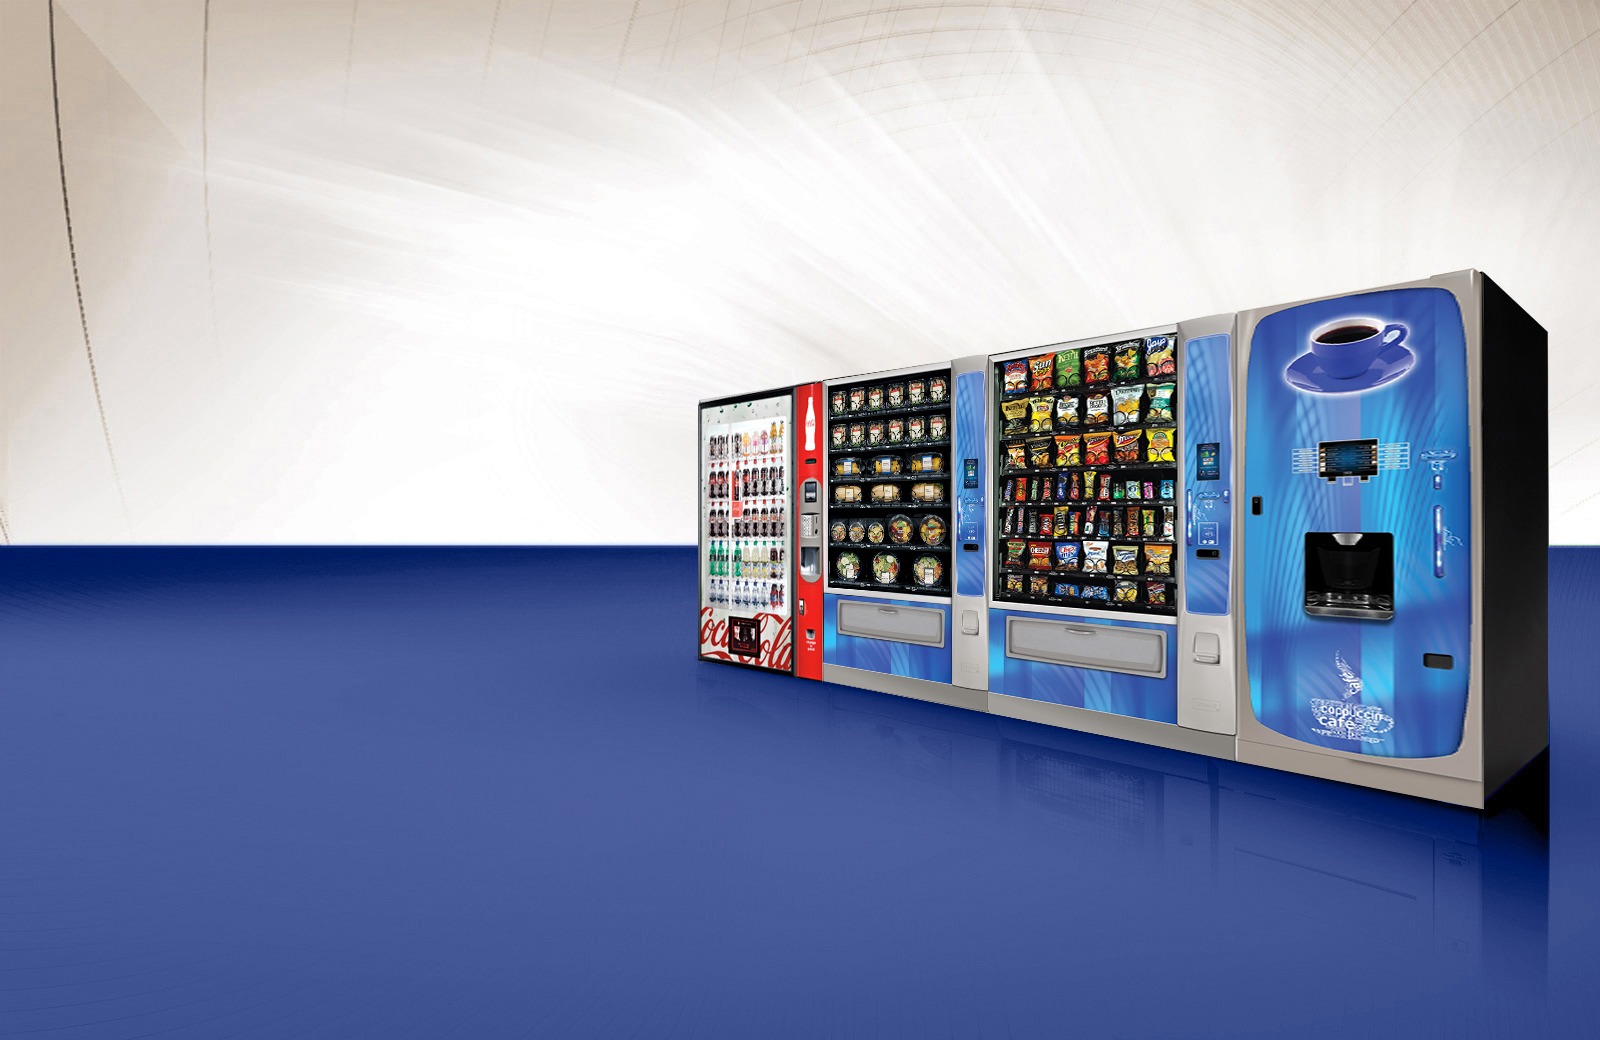 Vending machines in New York